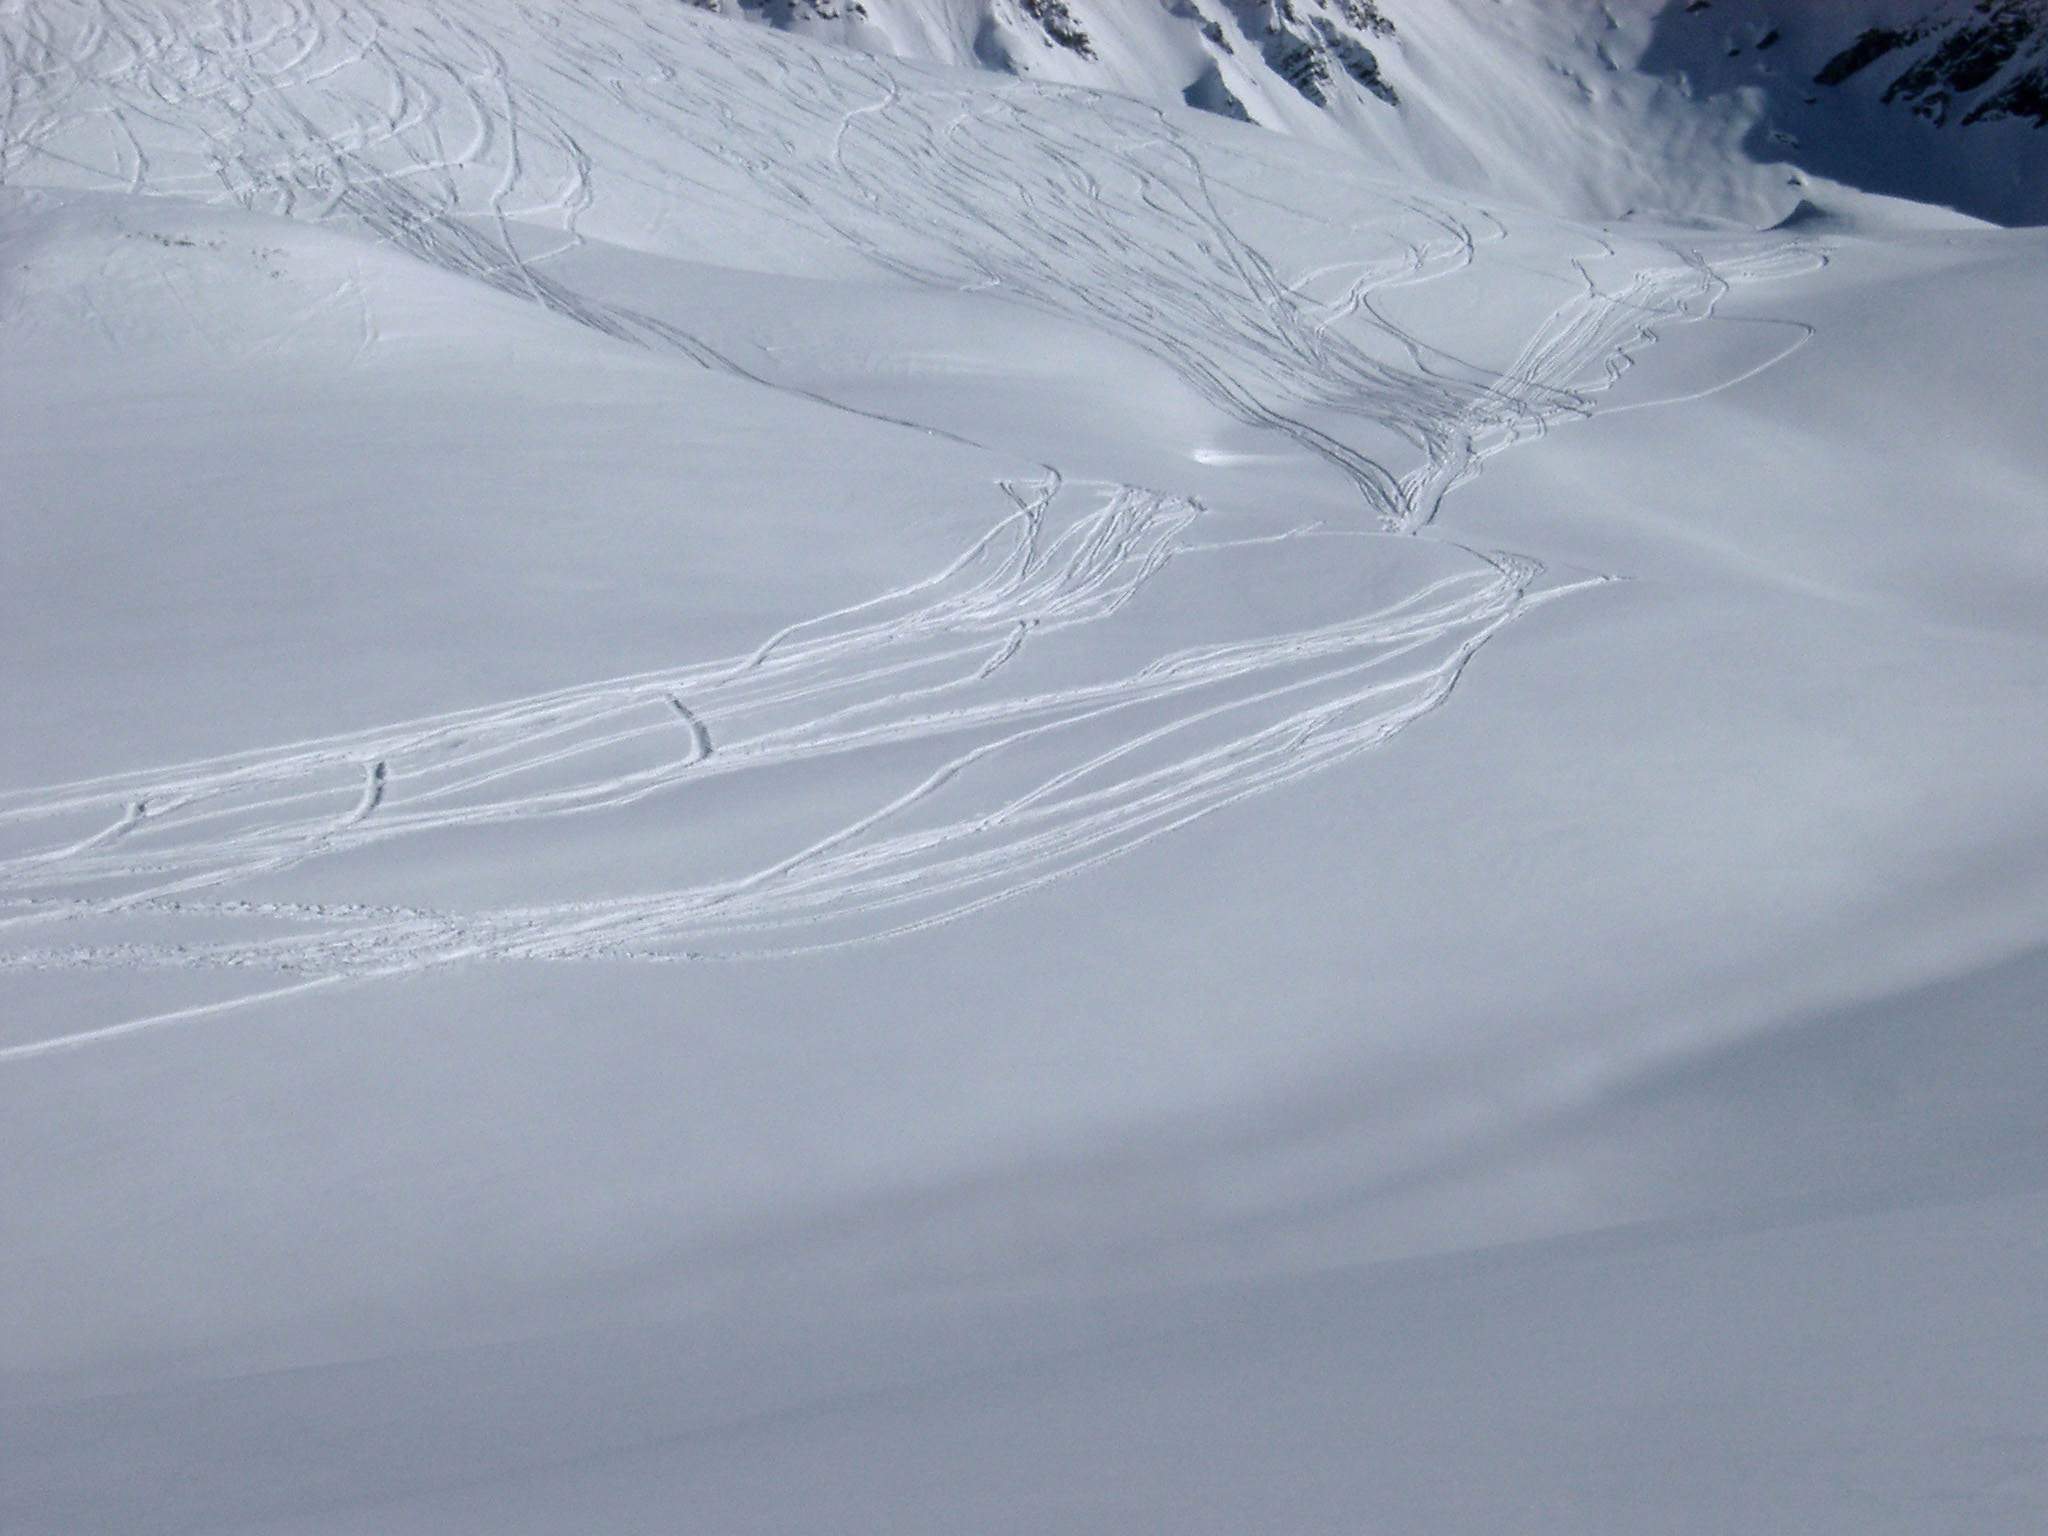 Beautiful Extensive View of Fresh Snow in Wide Snow Field with Board Trails During Winter Holiday.